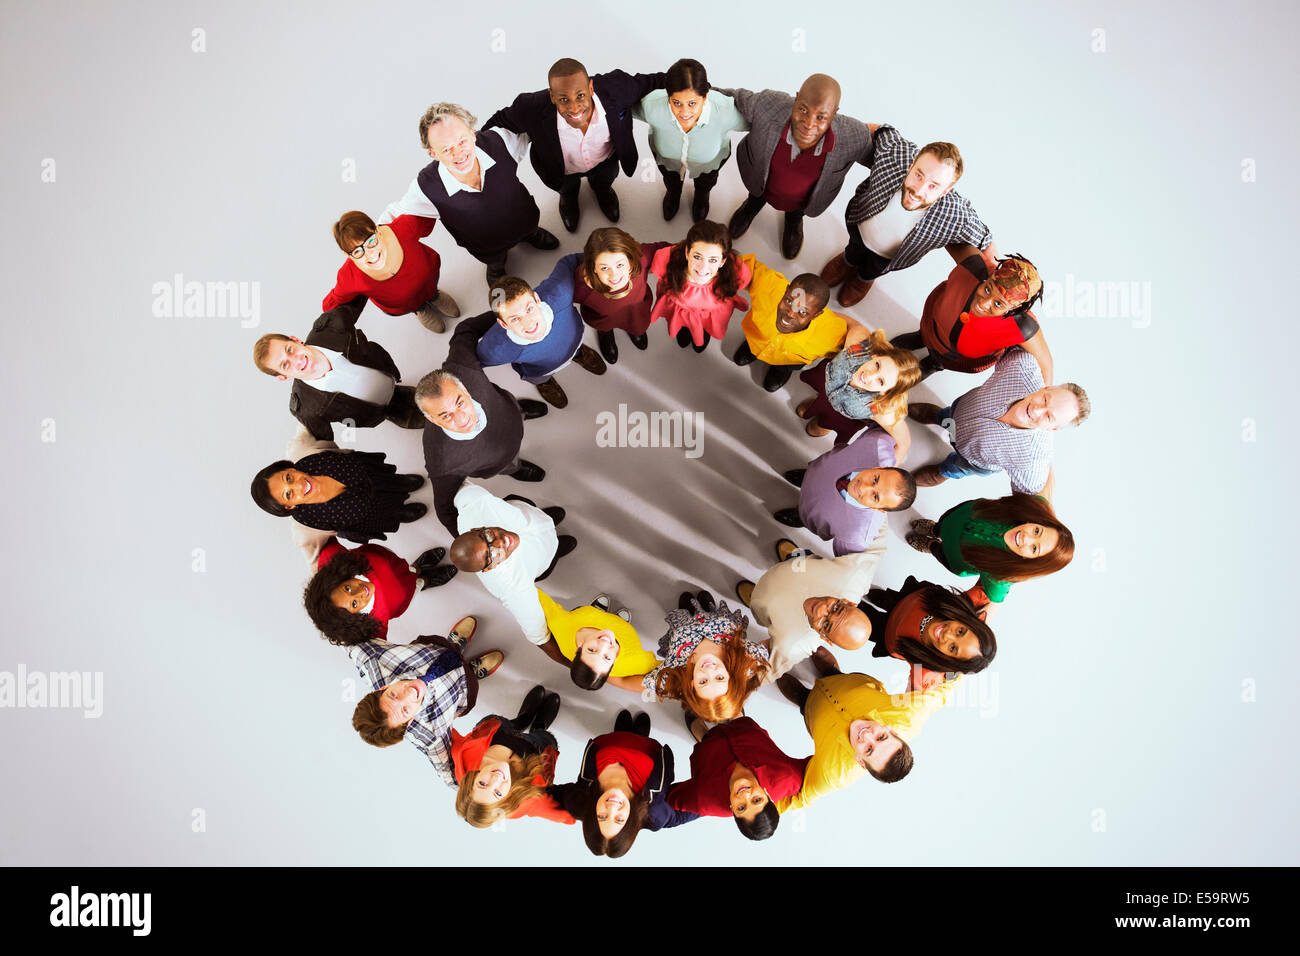 Portrait of confident business people in circle - Stock Image